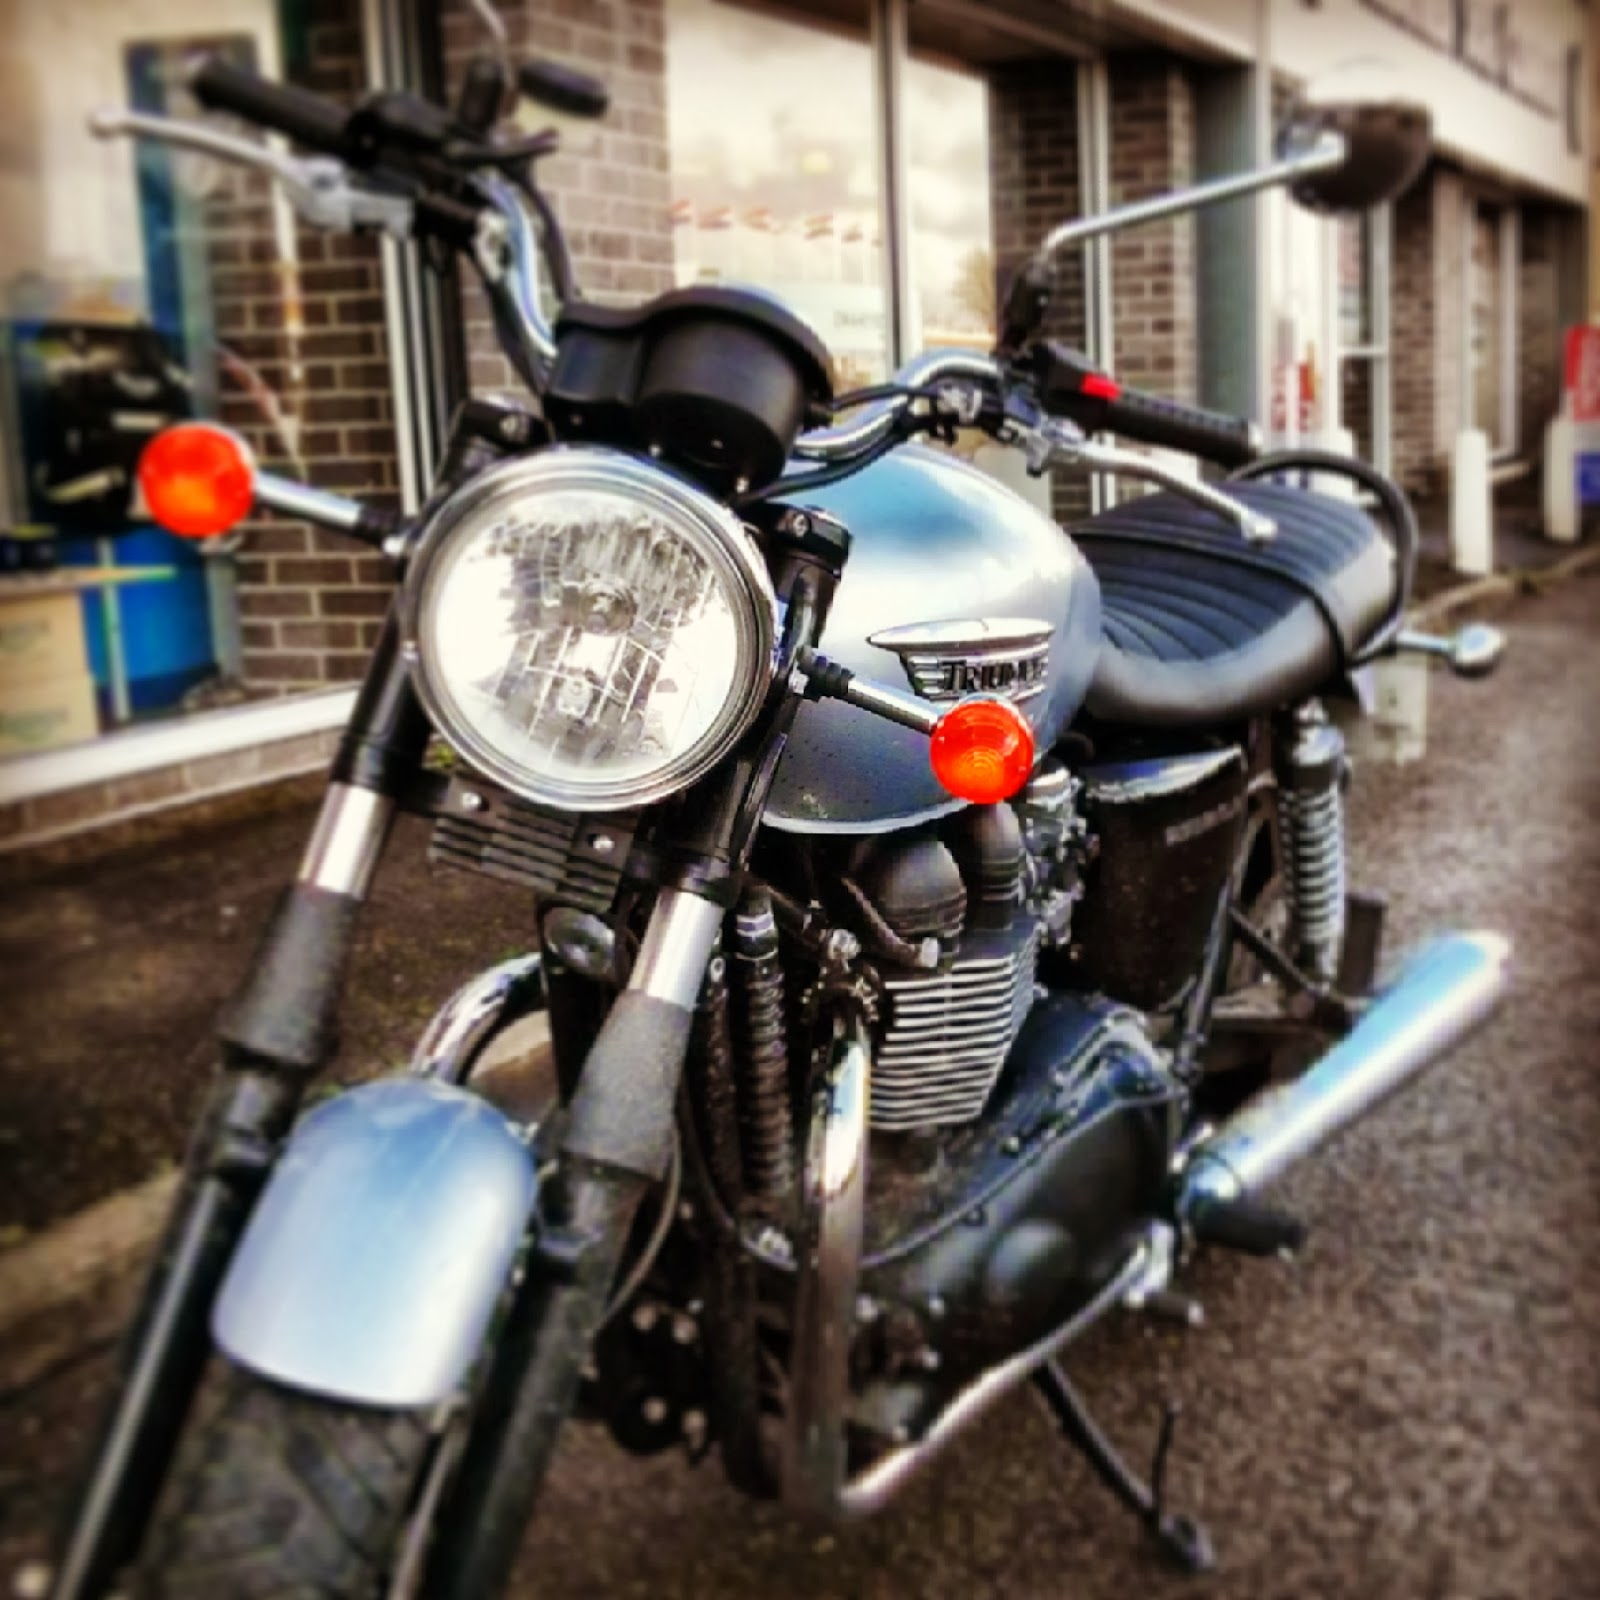 The motorcycle obsession